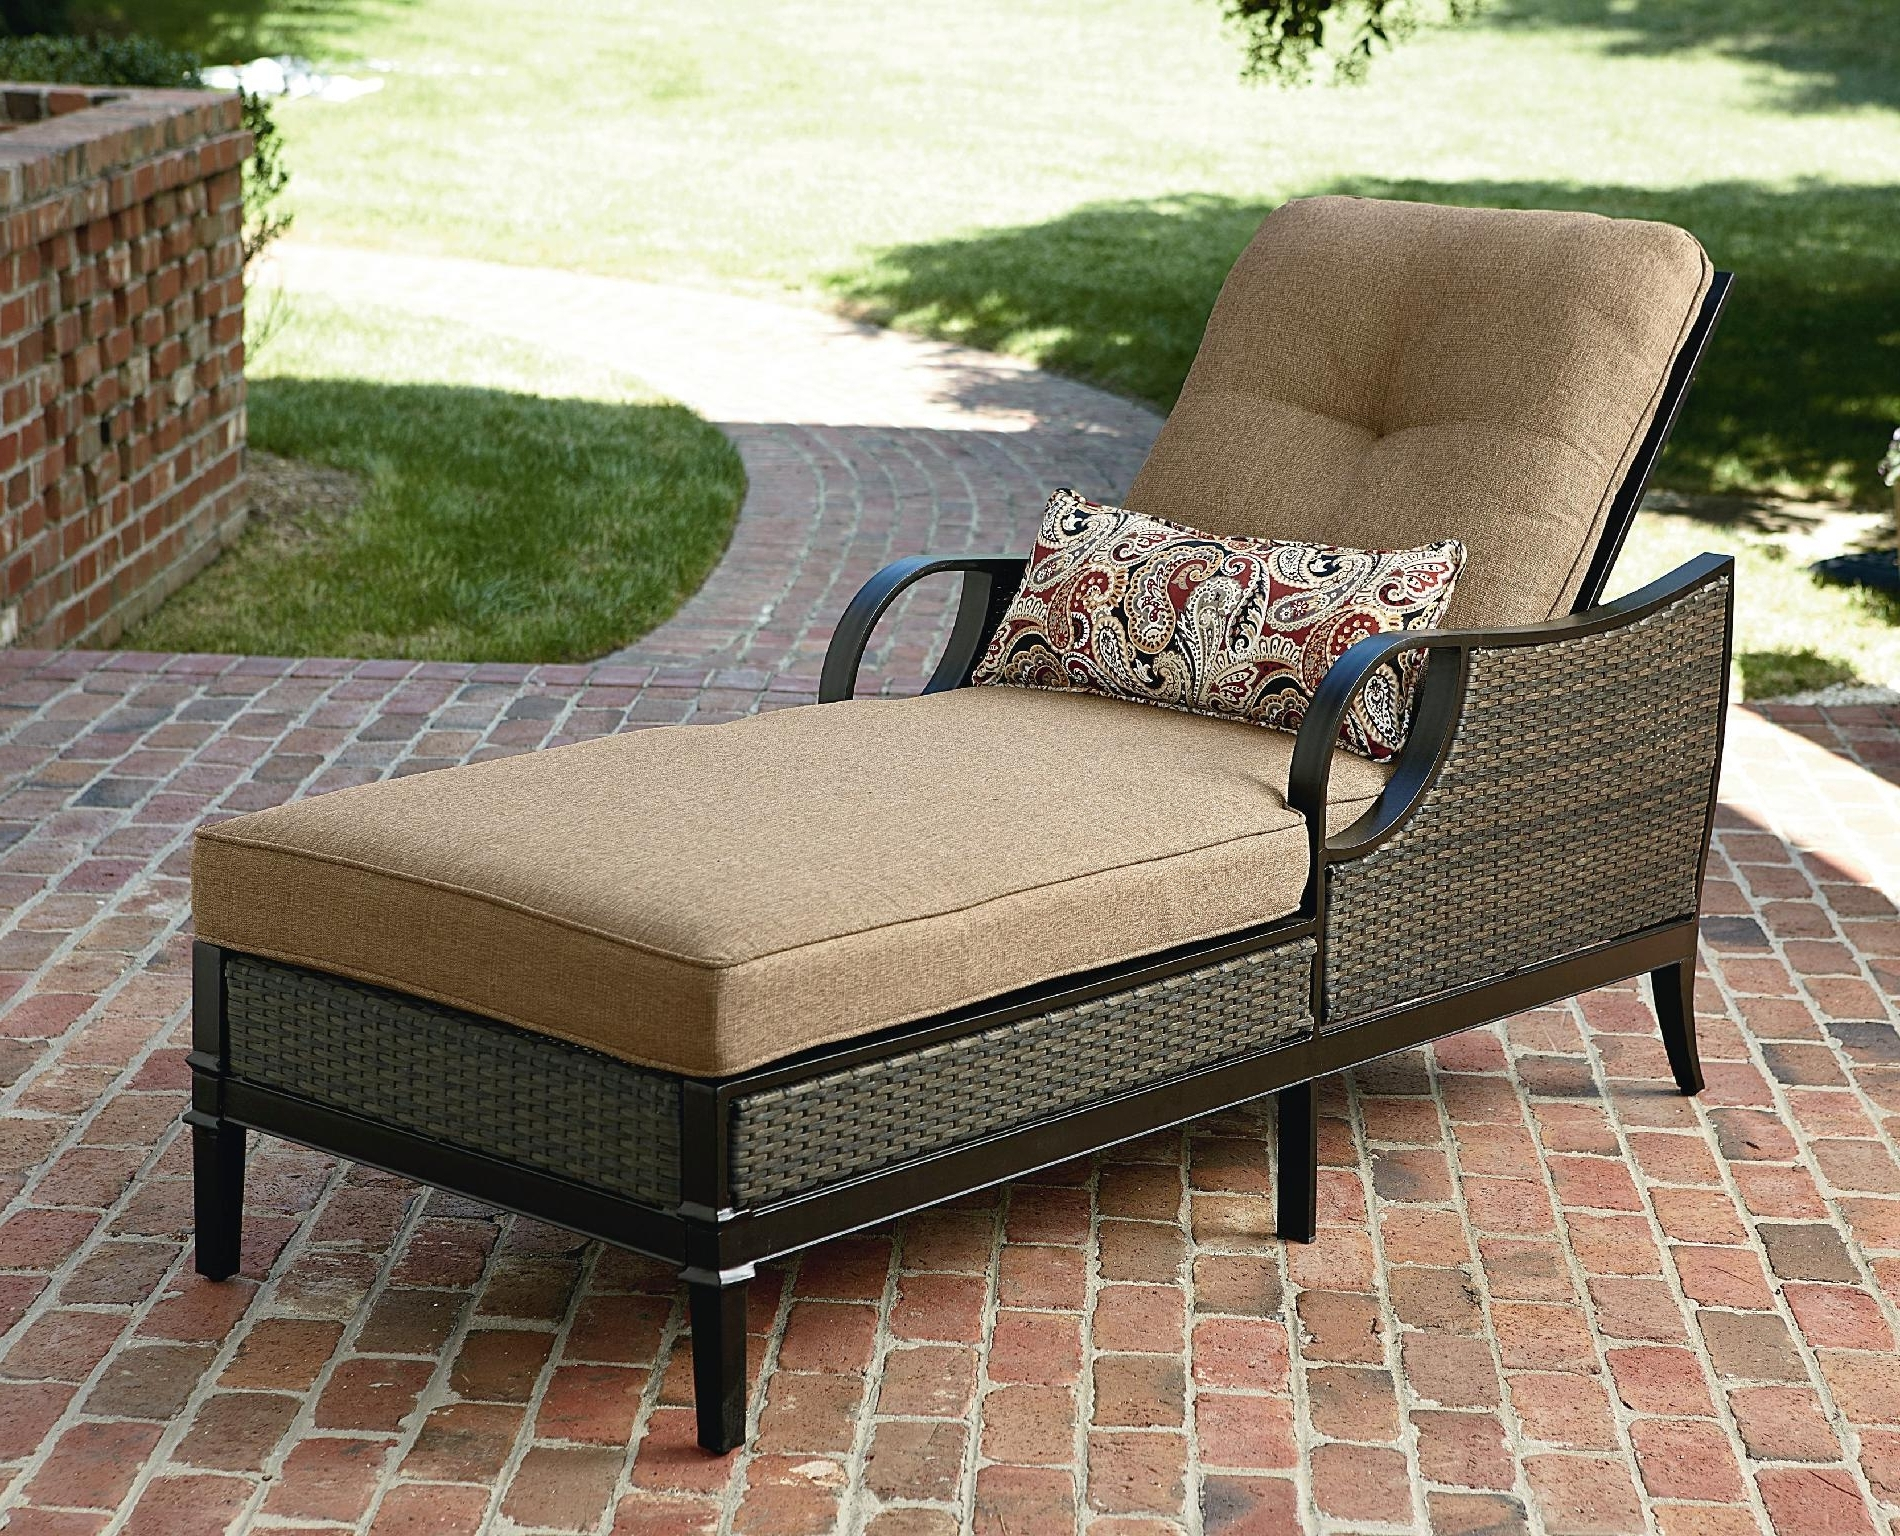 Cheap Outdoor Chaise Lounges Inside Best And Newest Chaise Lounge Chairs For Patio • Lounge Chairs Ideas (View 2 of 15)